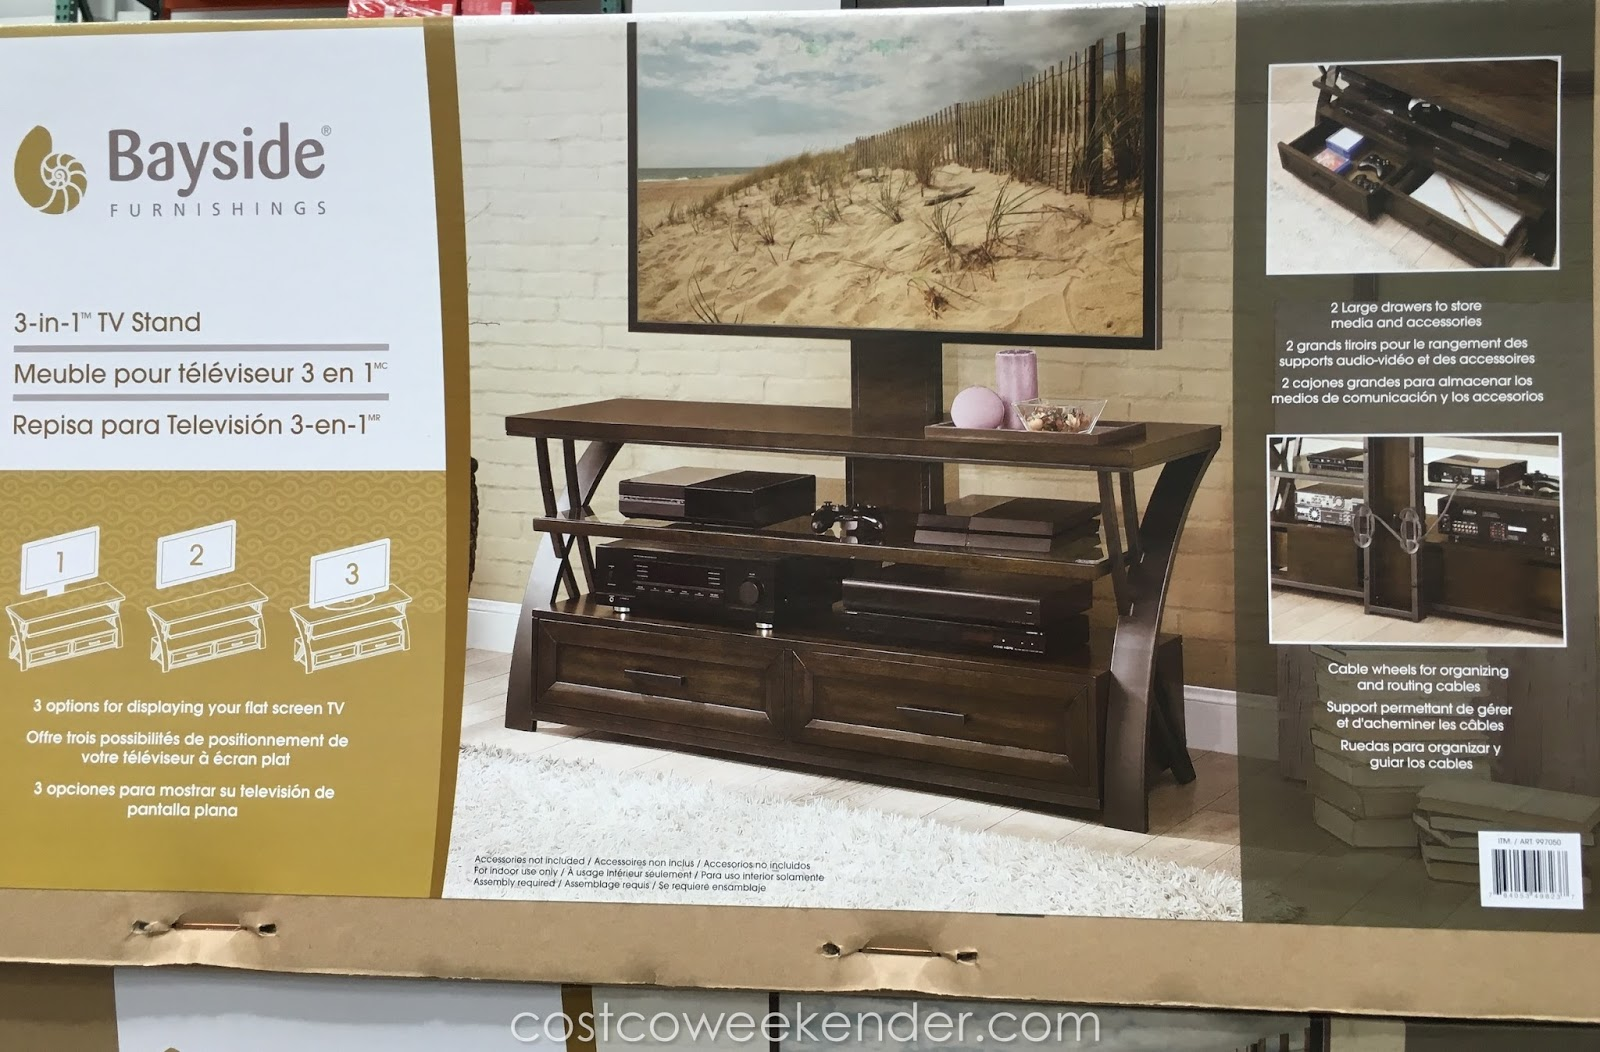 Display Your Tv With The Stylish Look Of The Bayside Furnishings 3 In 1